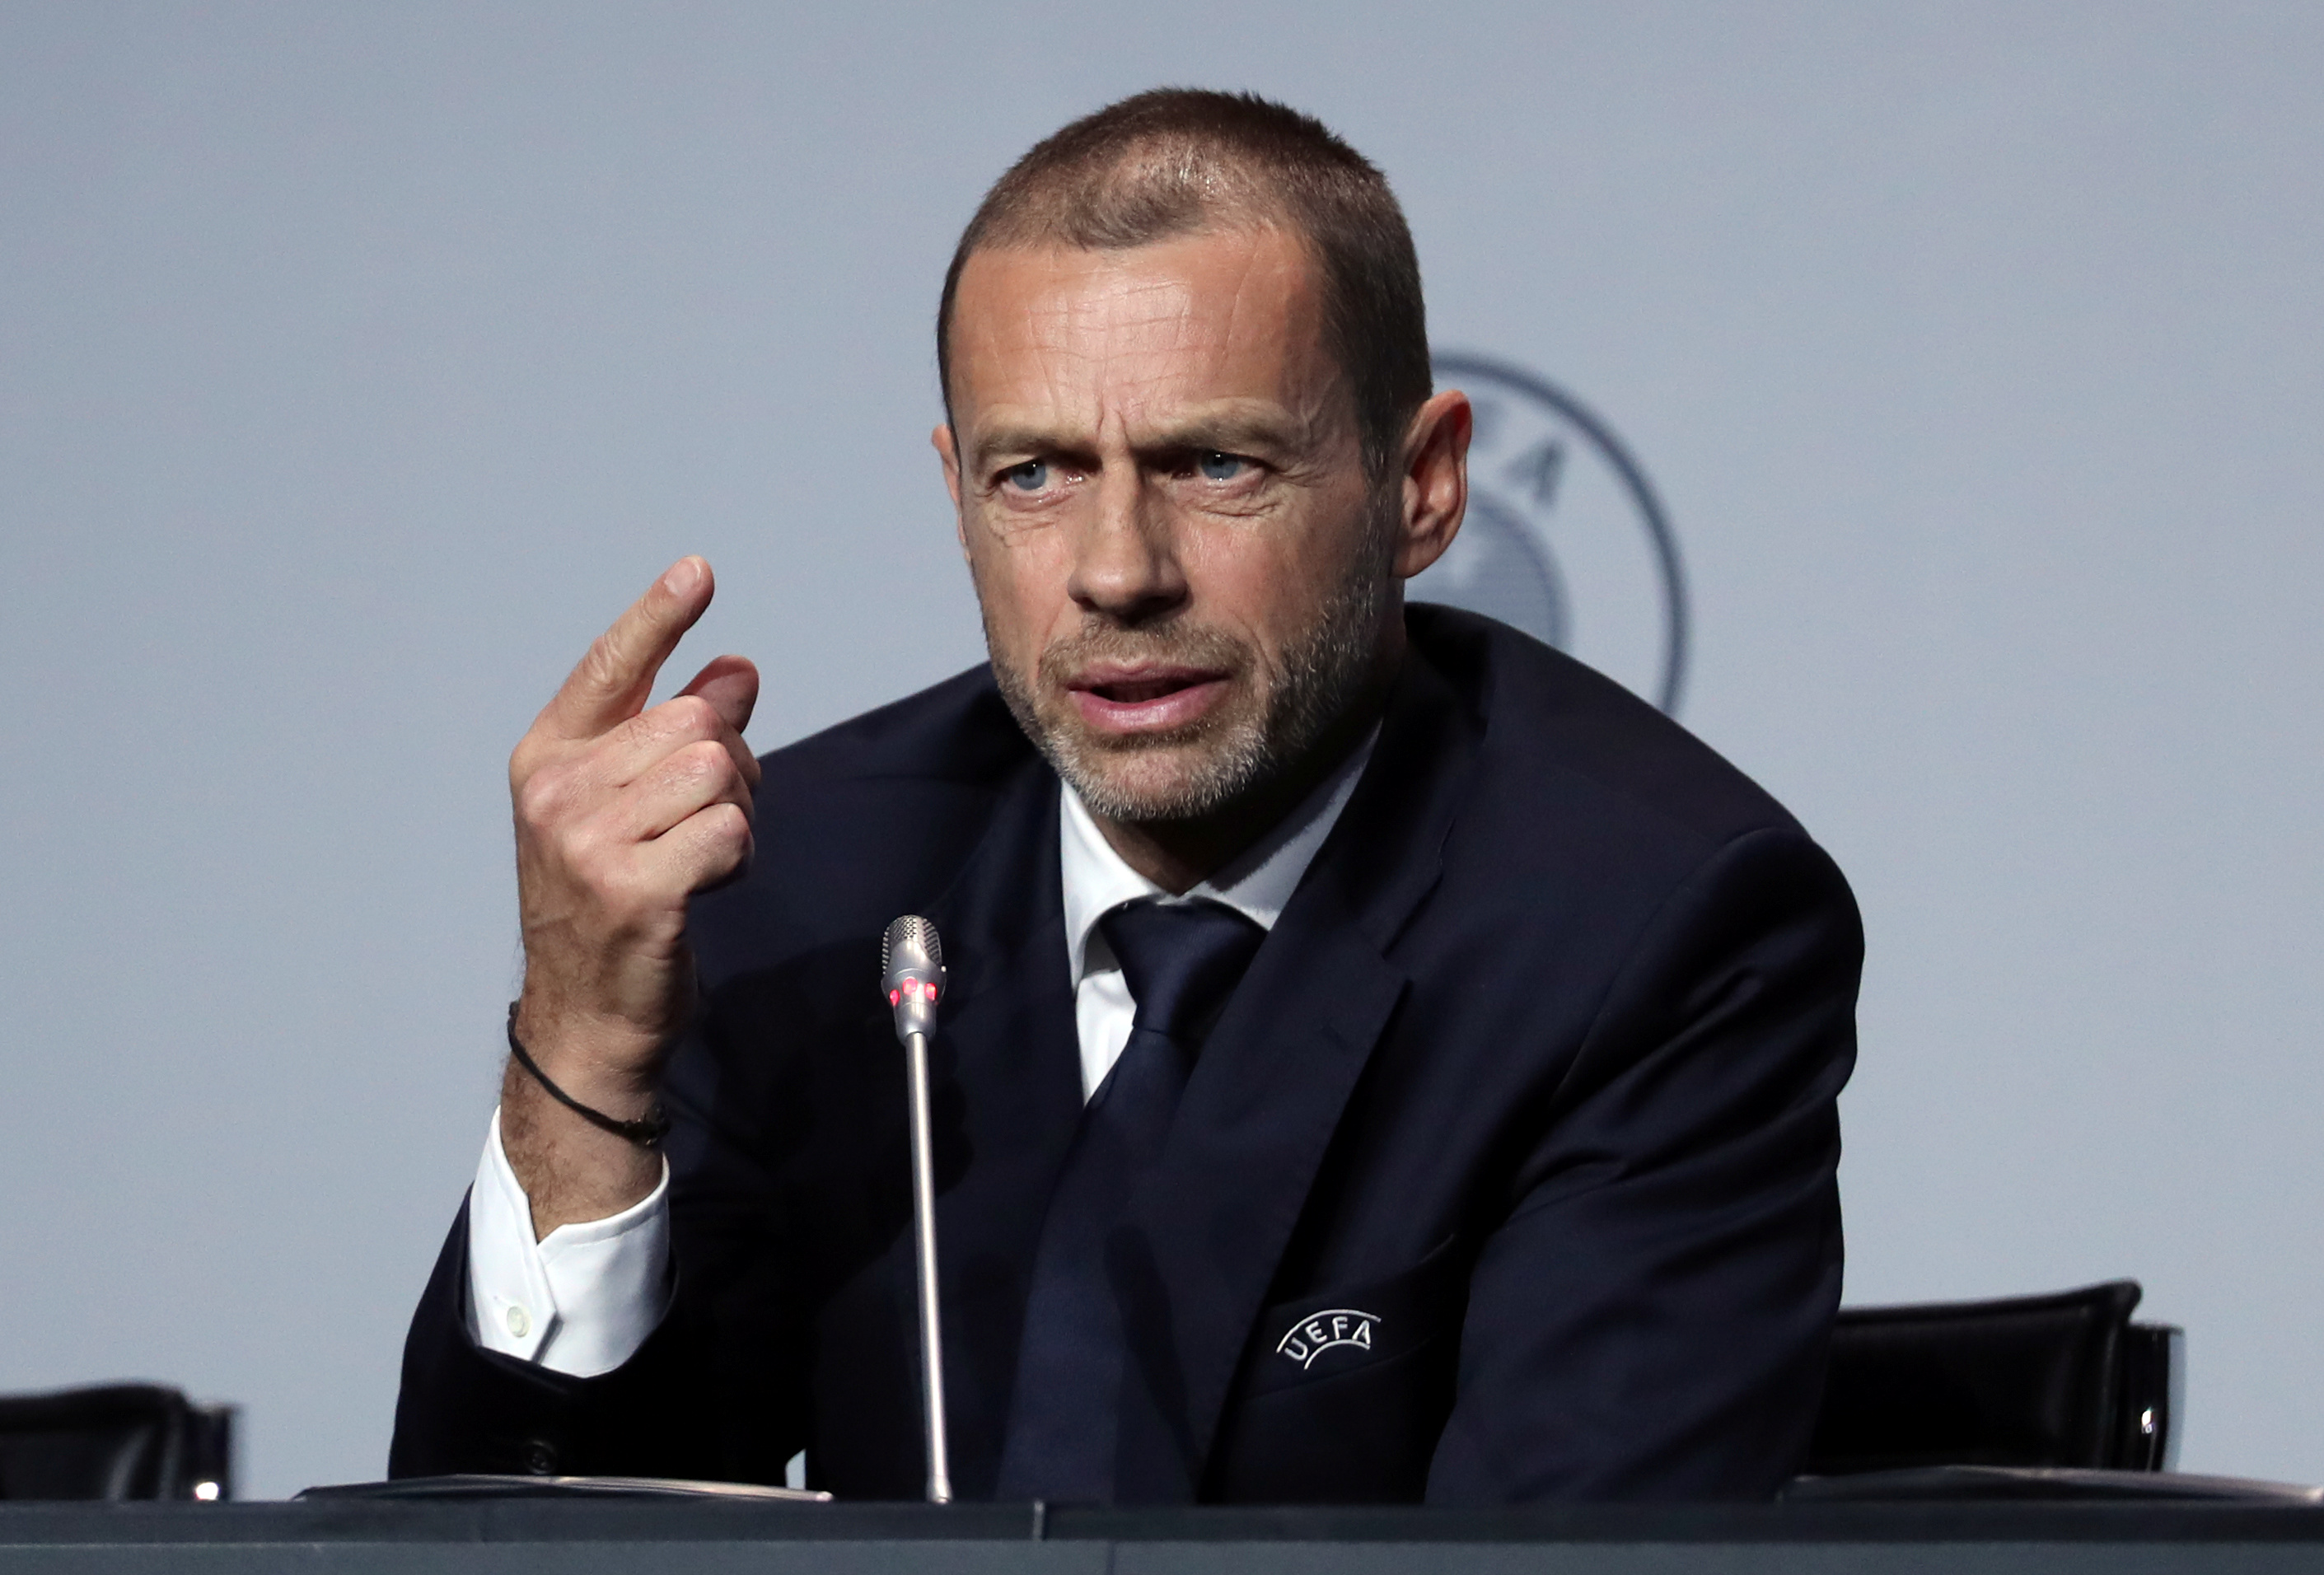 Should we be ashamed of our success?' asks UEFA chief | Deccan Herald